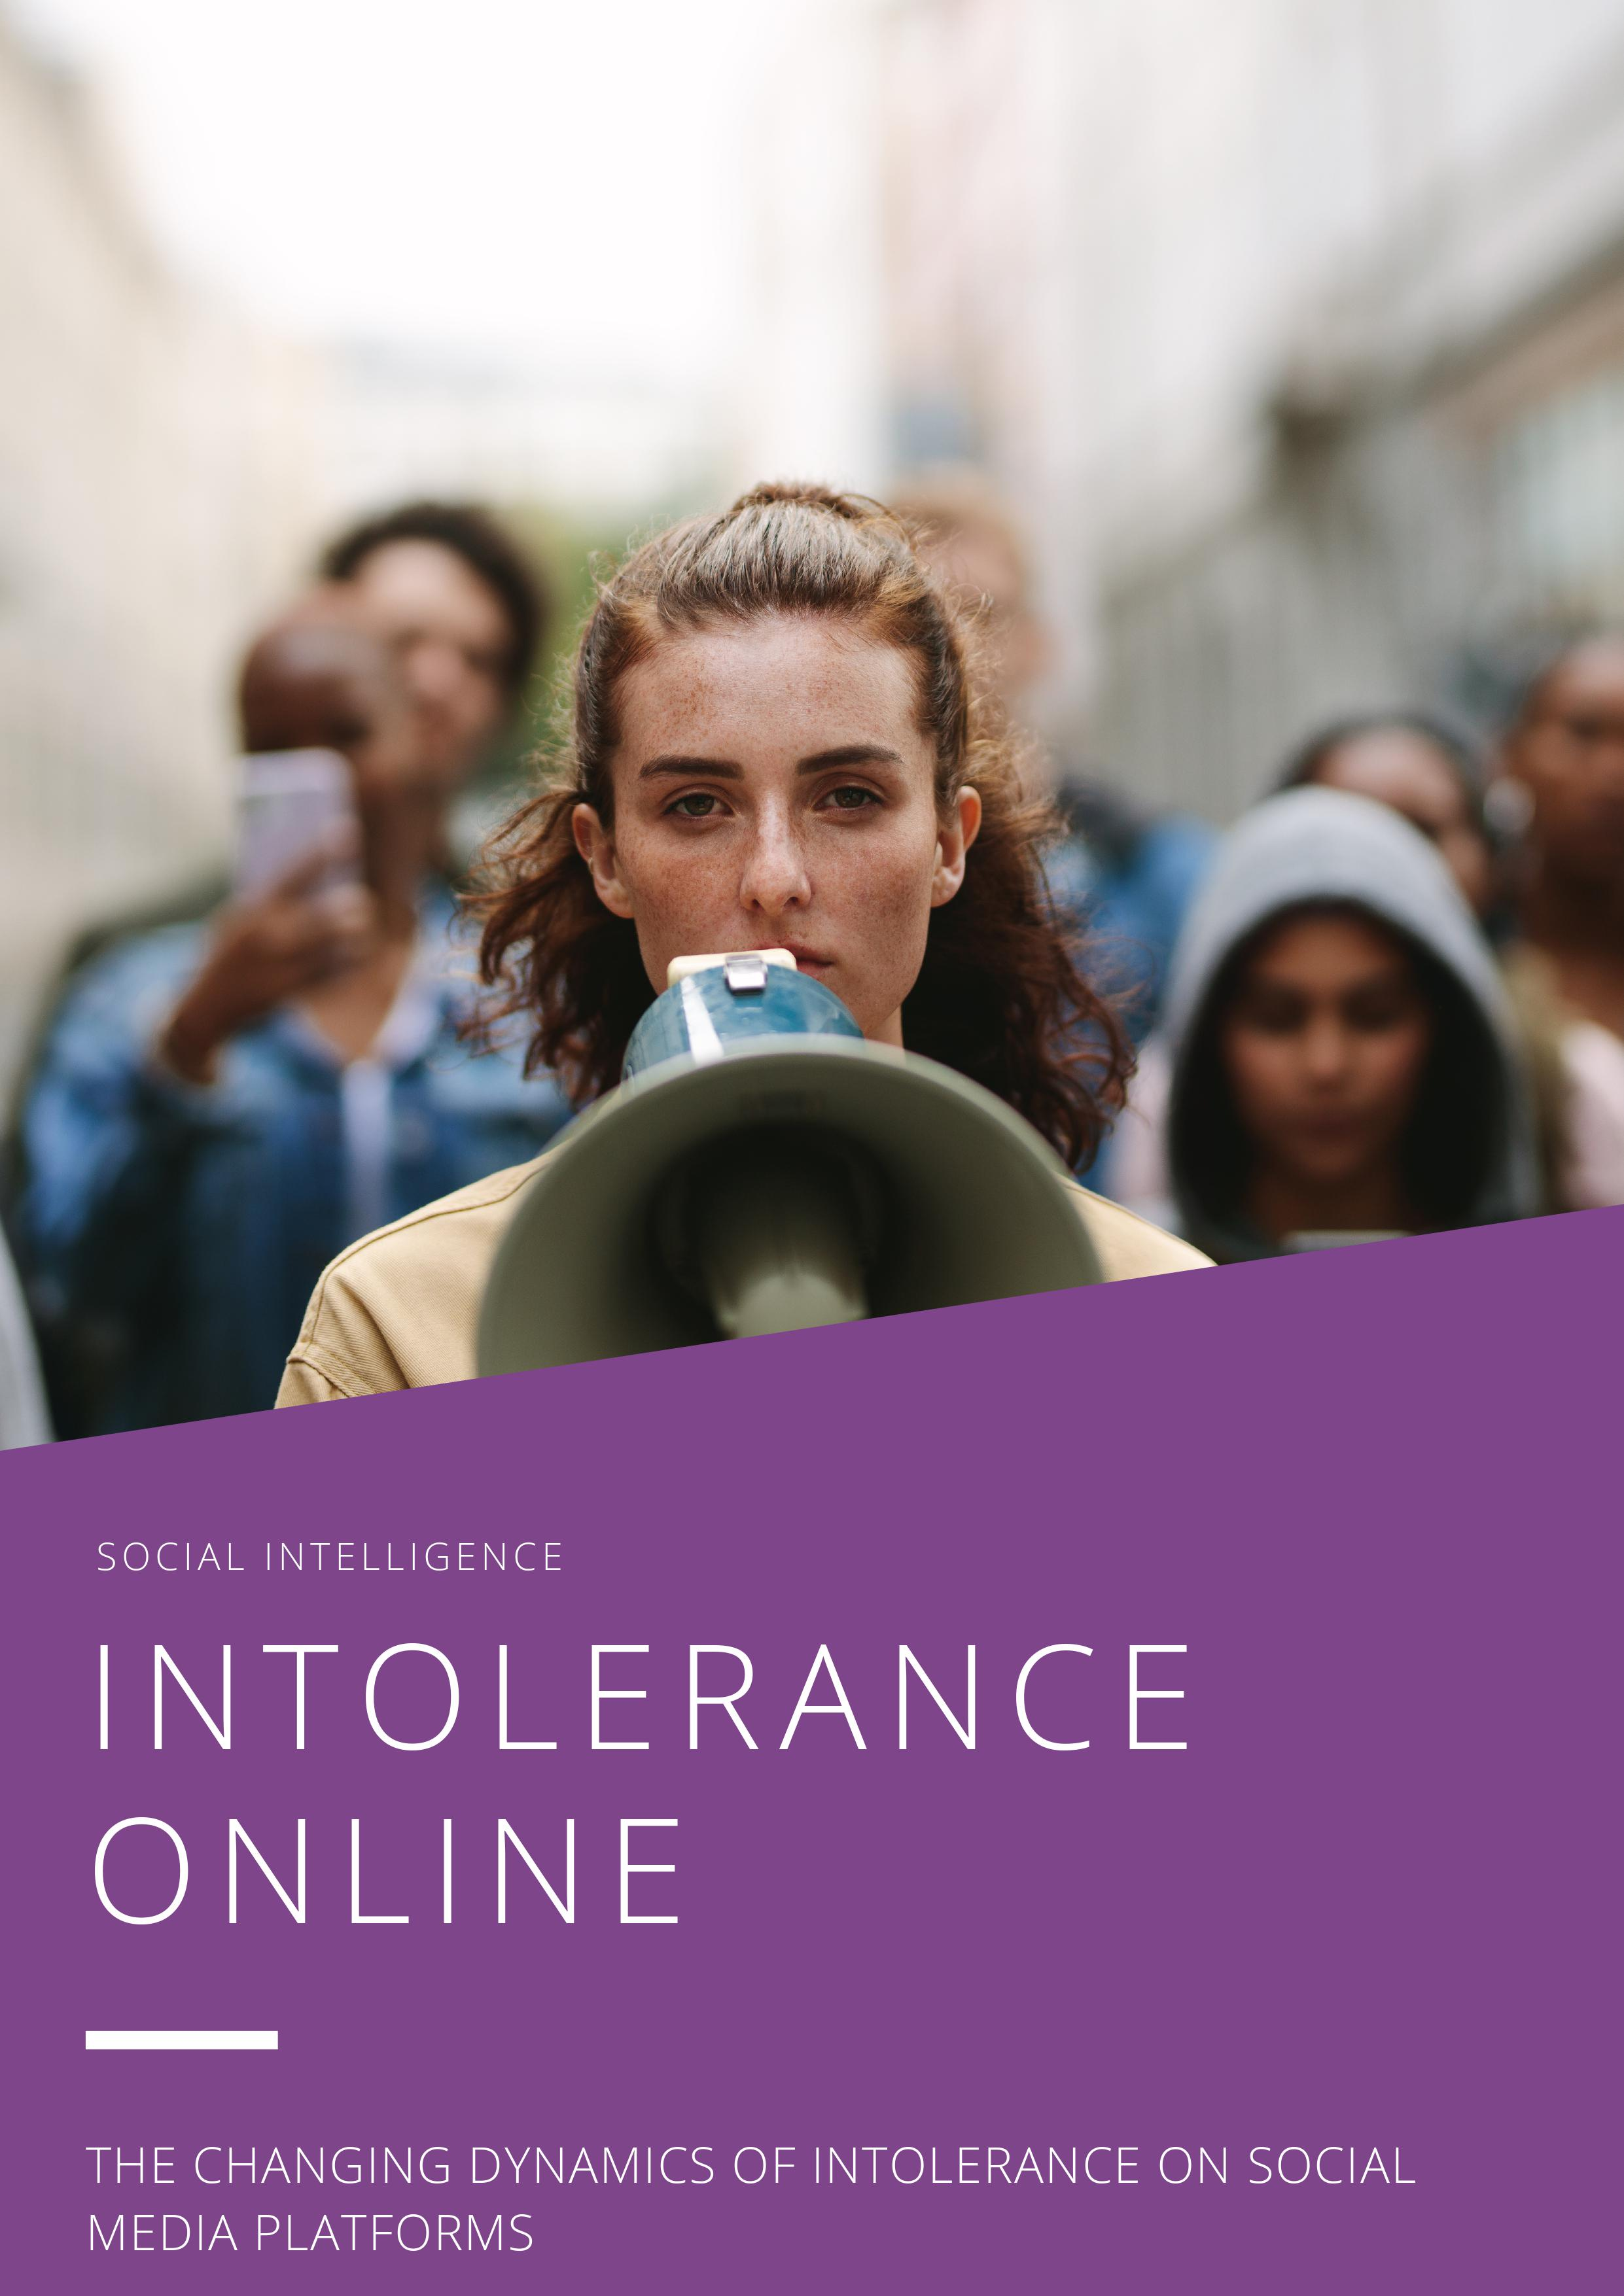 Intolerance Online Ebook Sized Cover